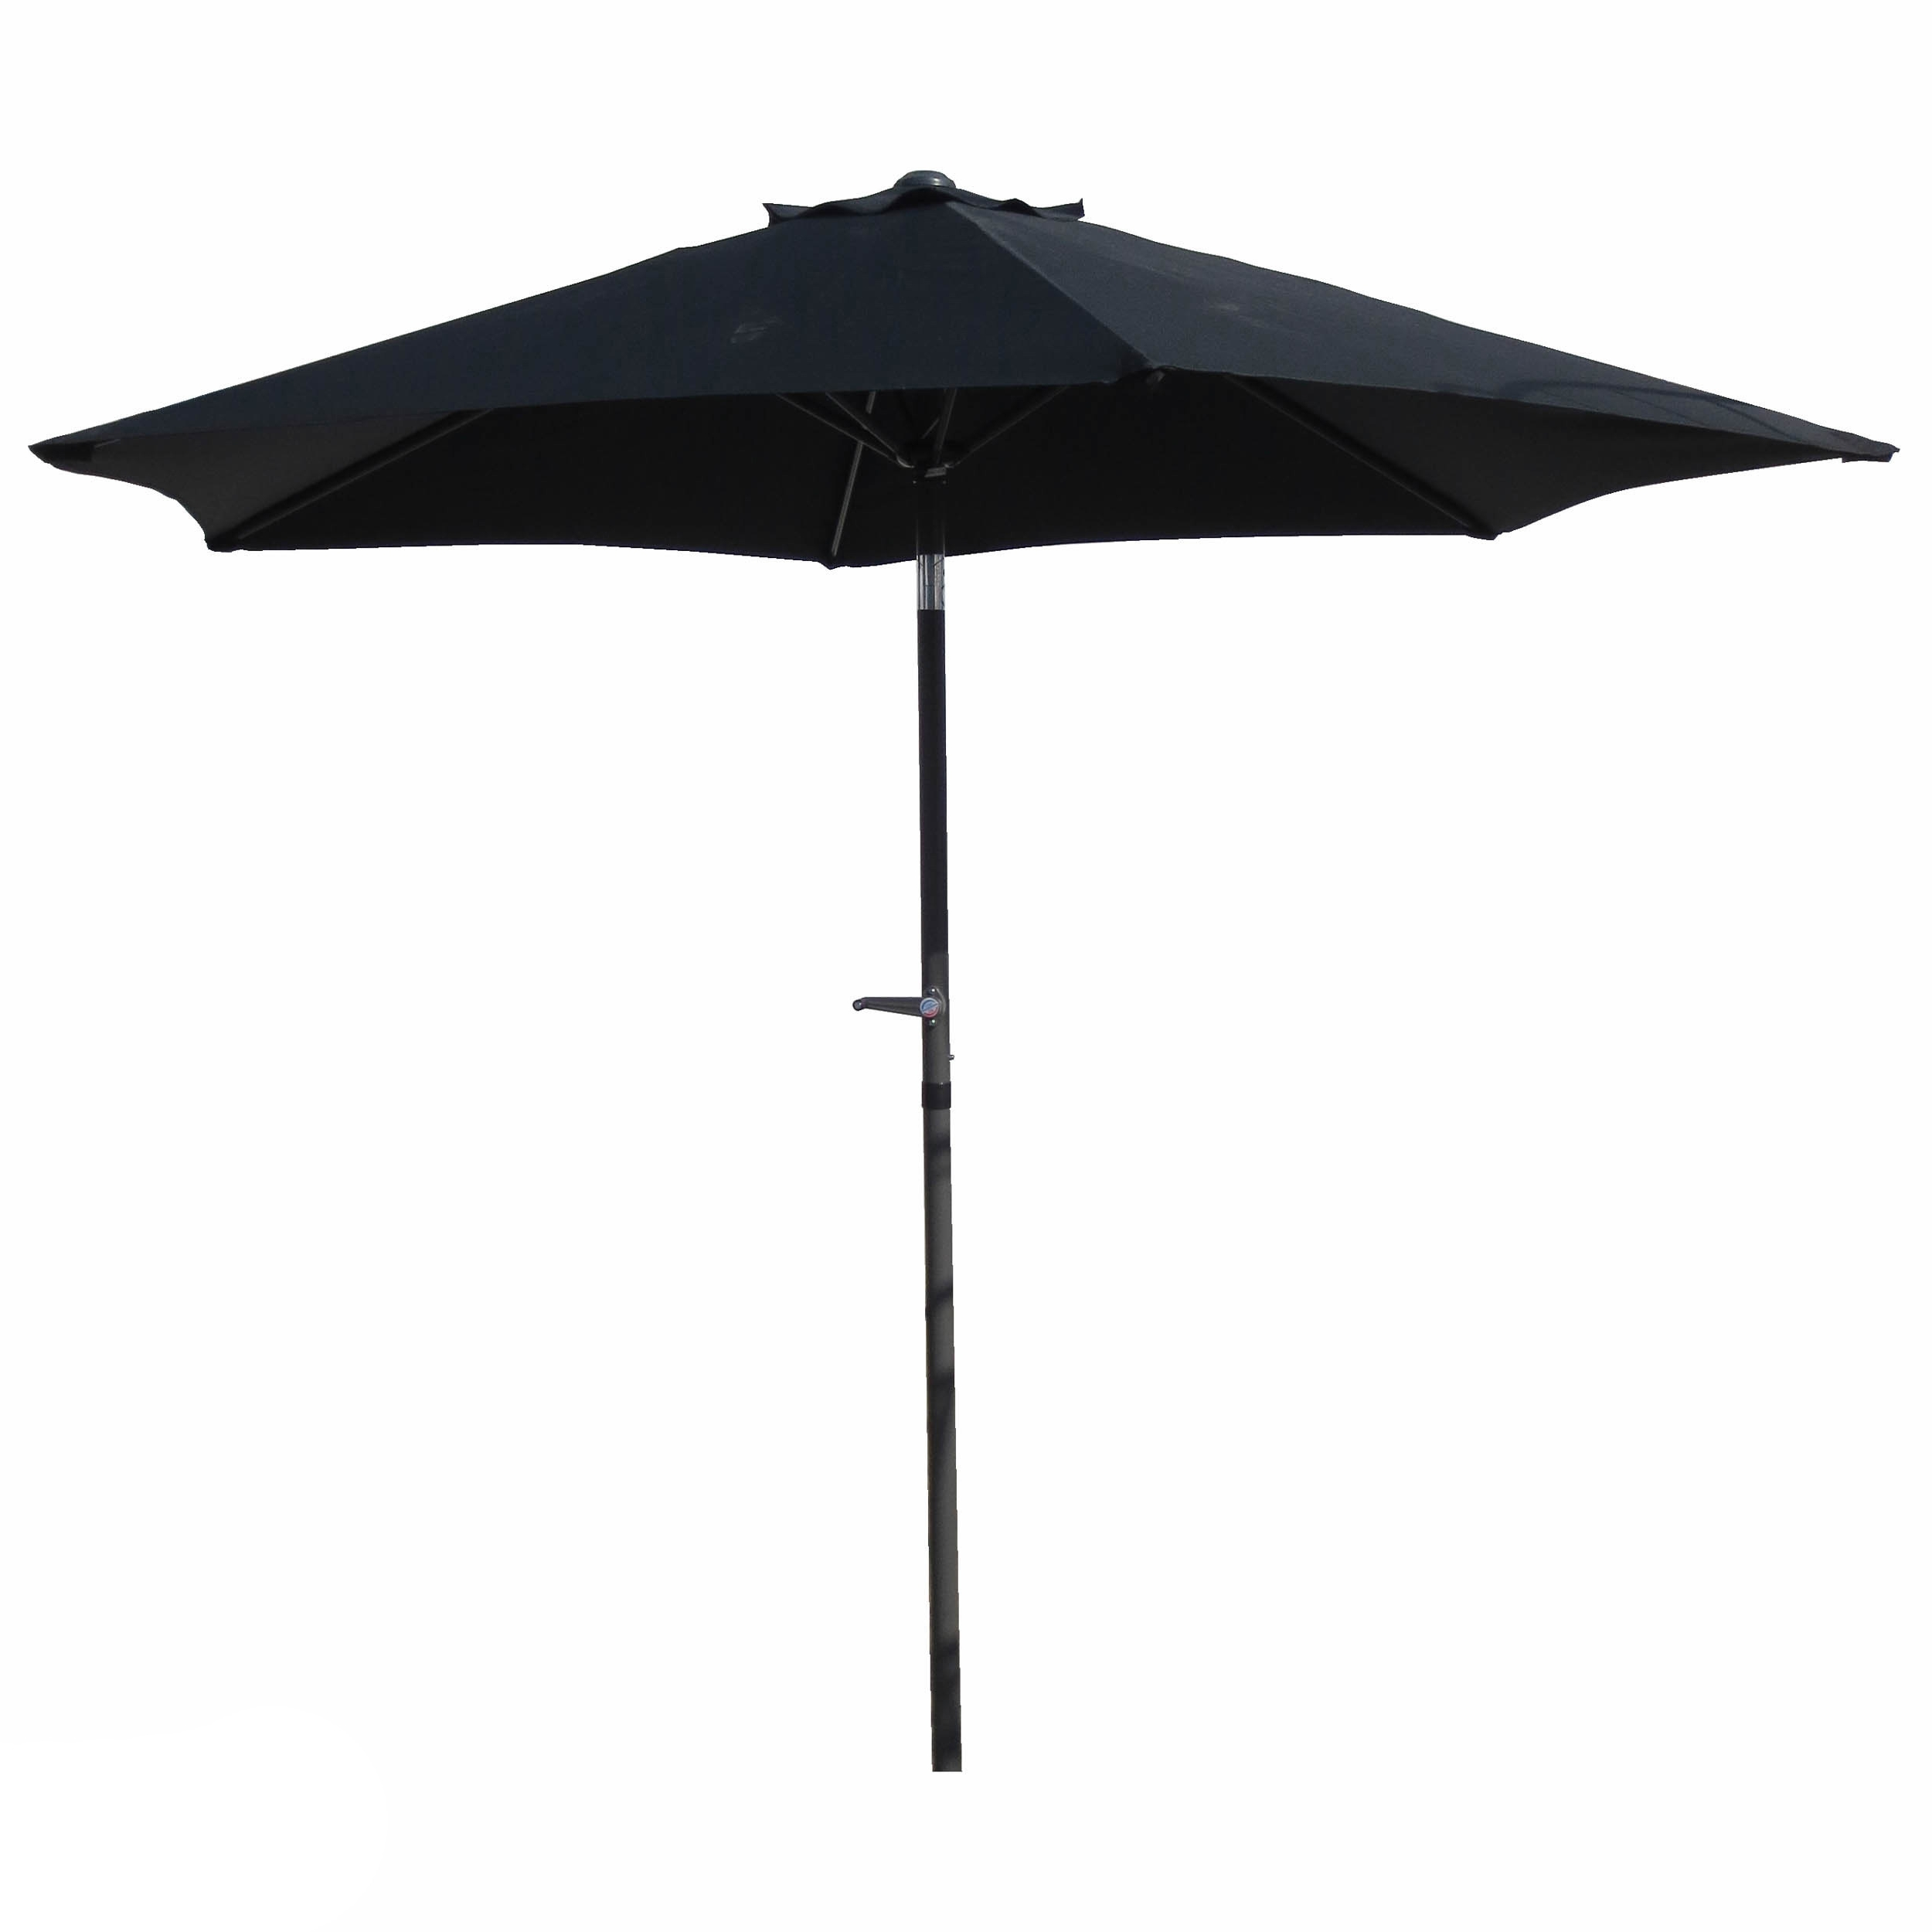 Most Recently Released Patio Umbrellas With White Pole With Regard To Shop International Caravan Patio Umbrella 8 Foot – On Sale – Free (View 11 of 20)